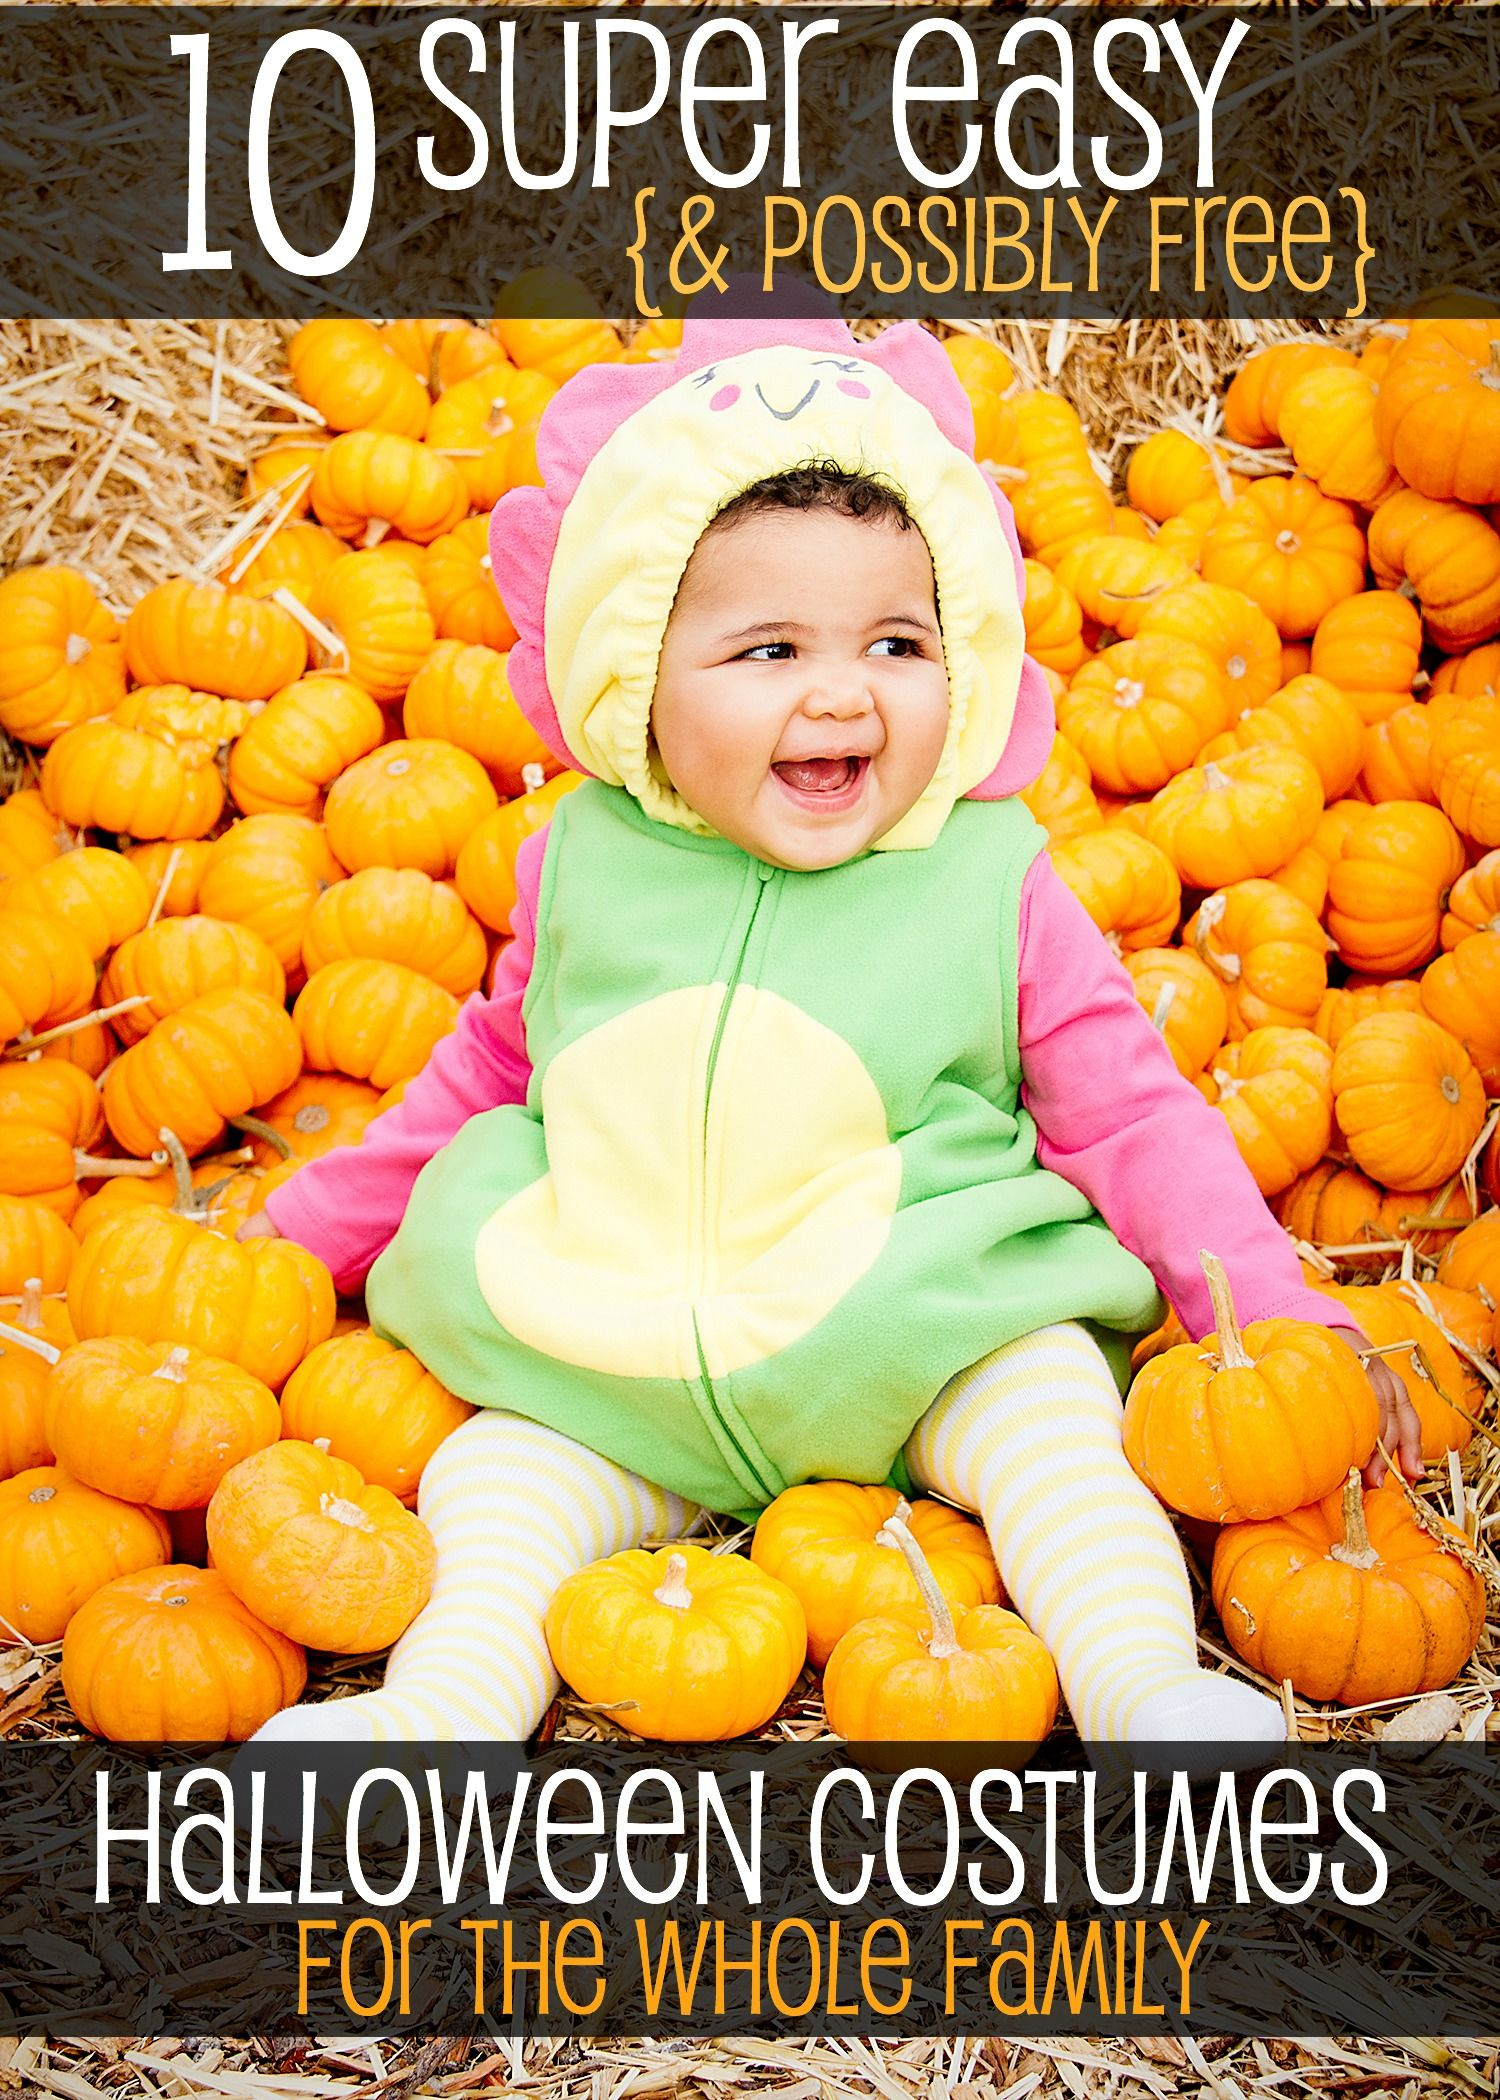 10 Super Easy And Possibly Free Halloween Costumes For The Whole Family